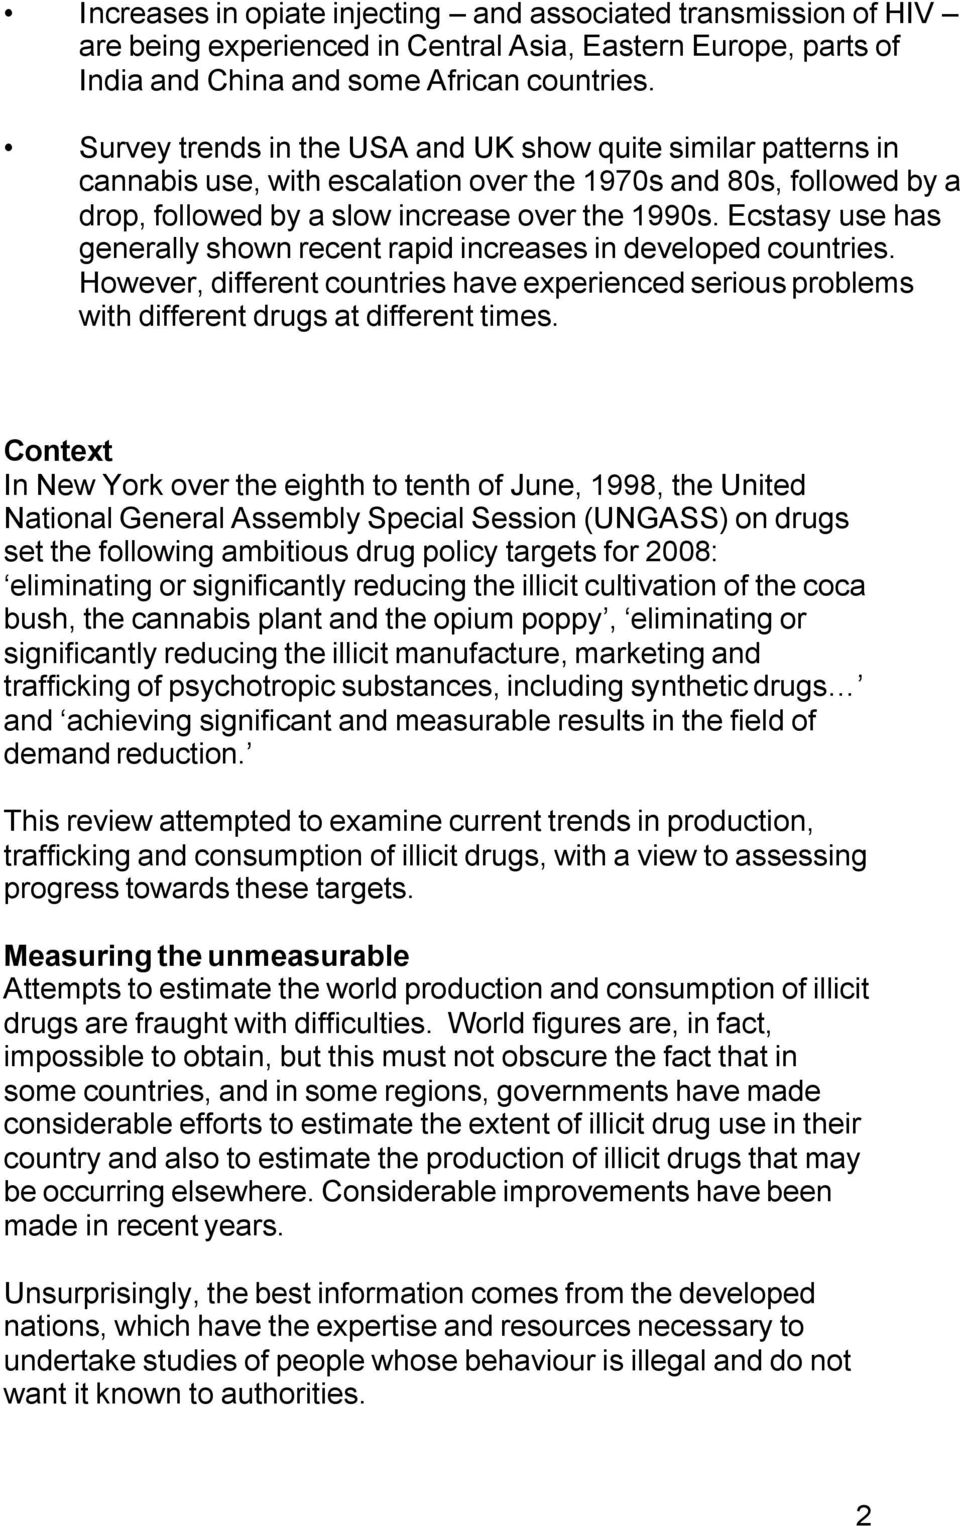 Ecstasy use has generally shown recent rapid increases in developed countries. However, different countries have experienced serious problems with different drugs at different times.